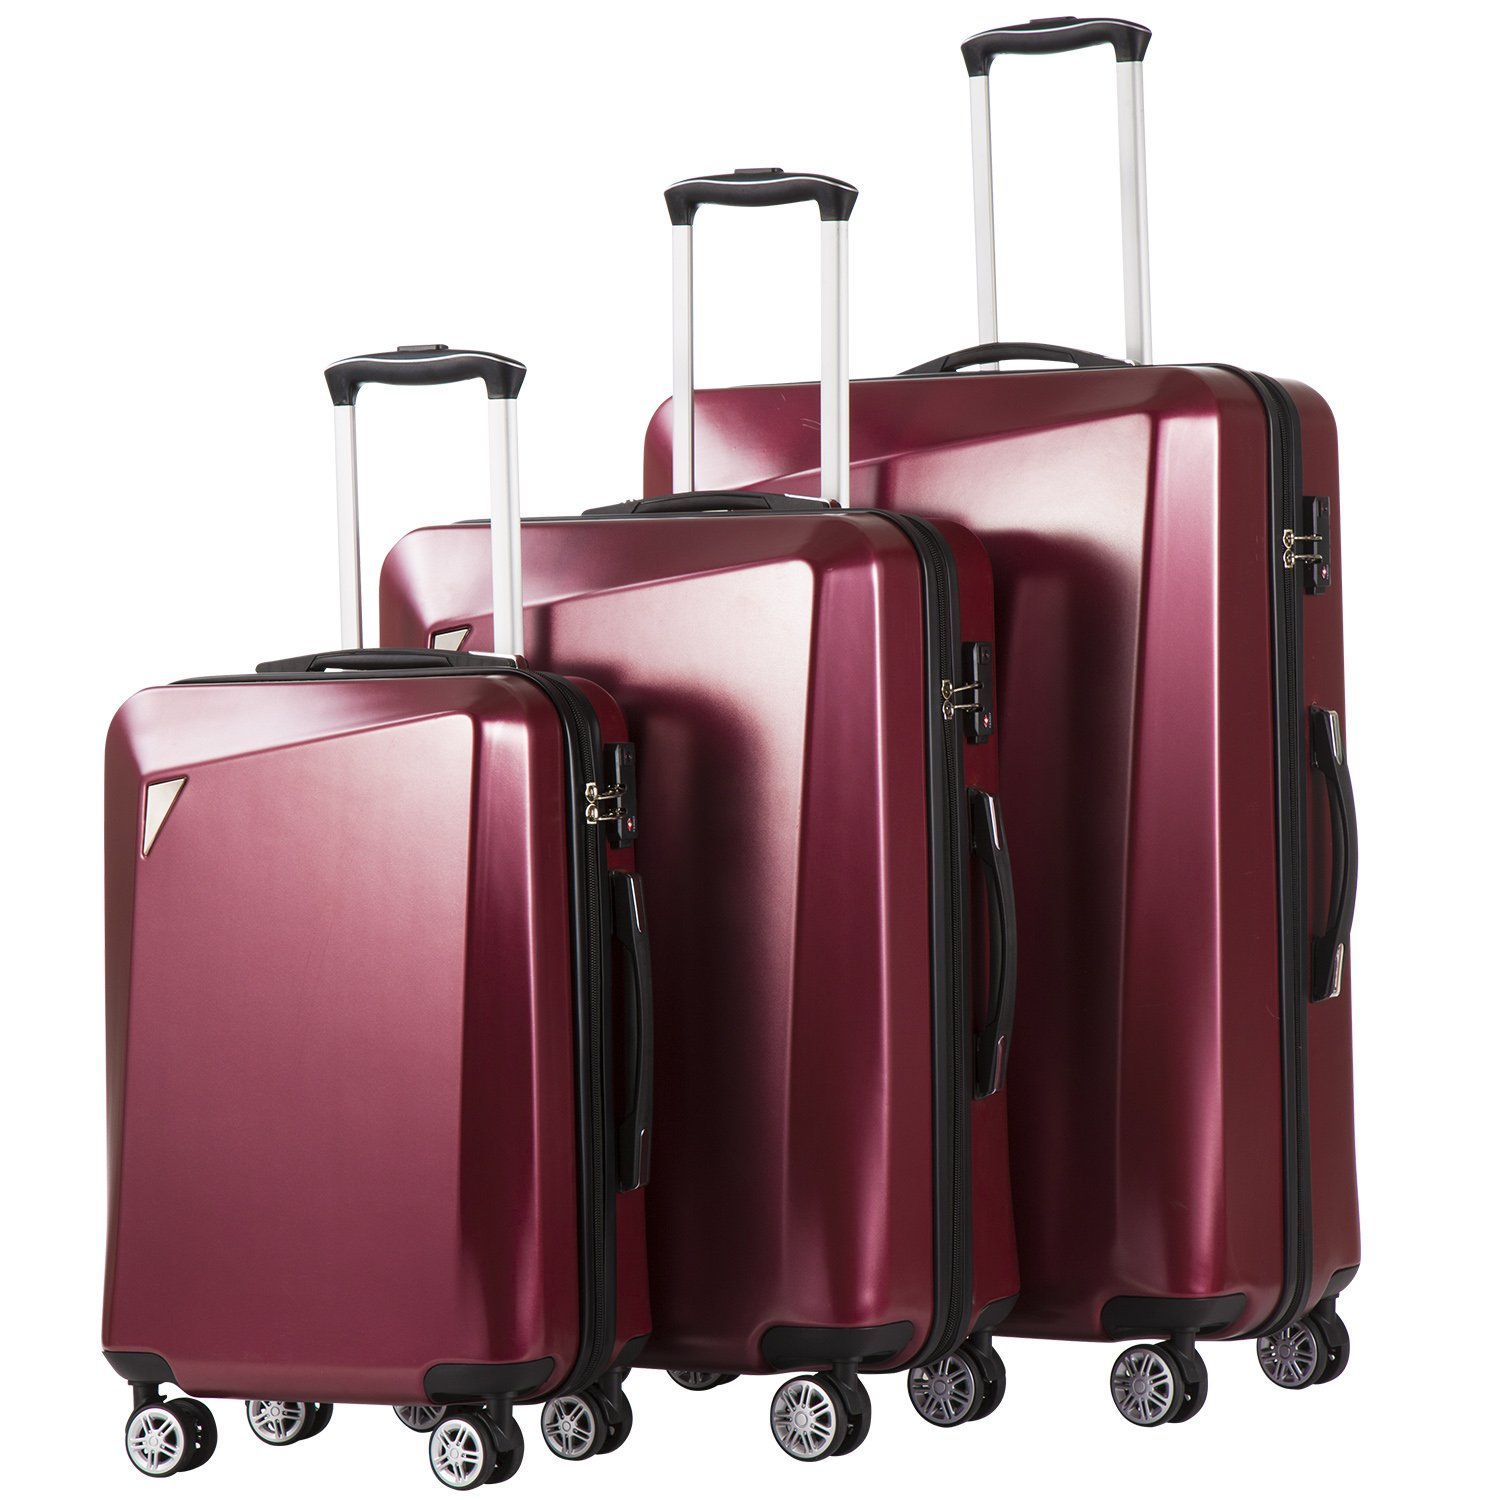 Coolife Luggage 3 Piece Sets PC+ABS Spinner Suitcase 20 inch 24 inch 28 inch (wine red2)